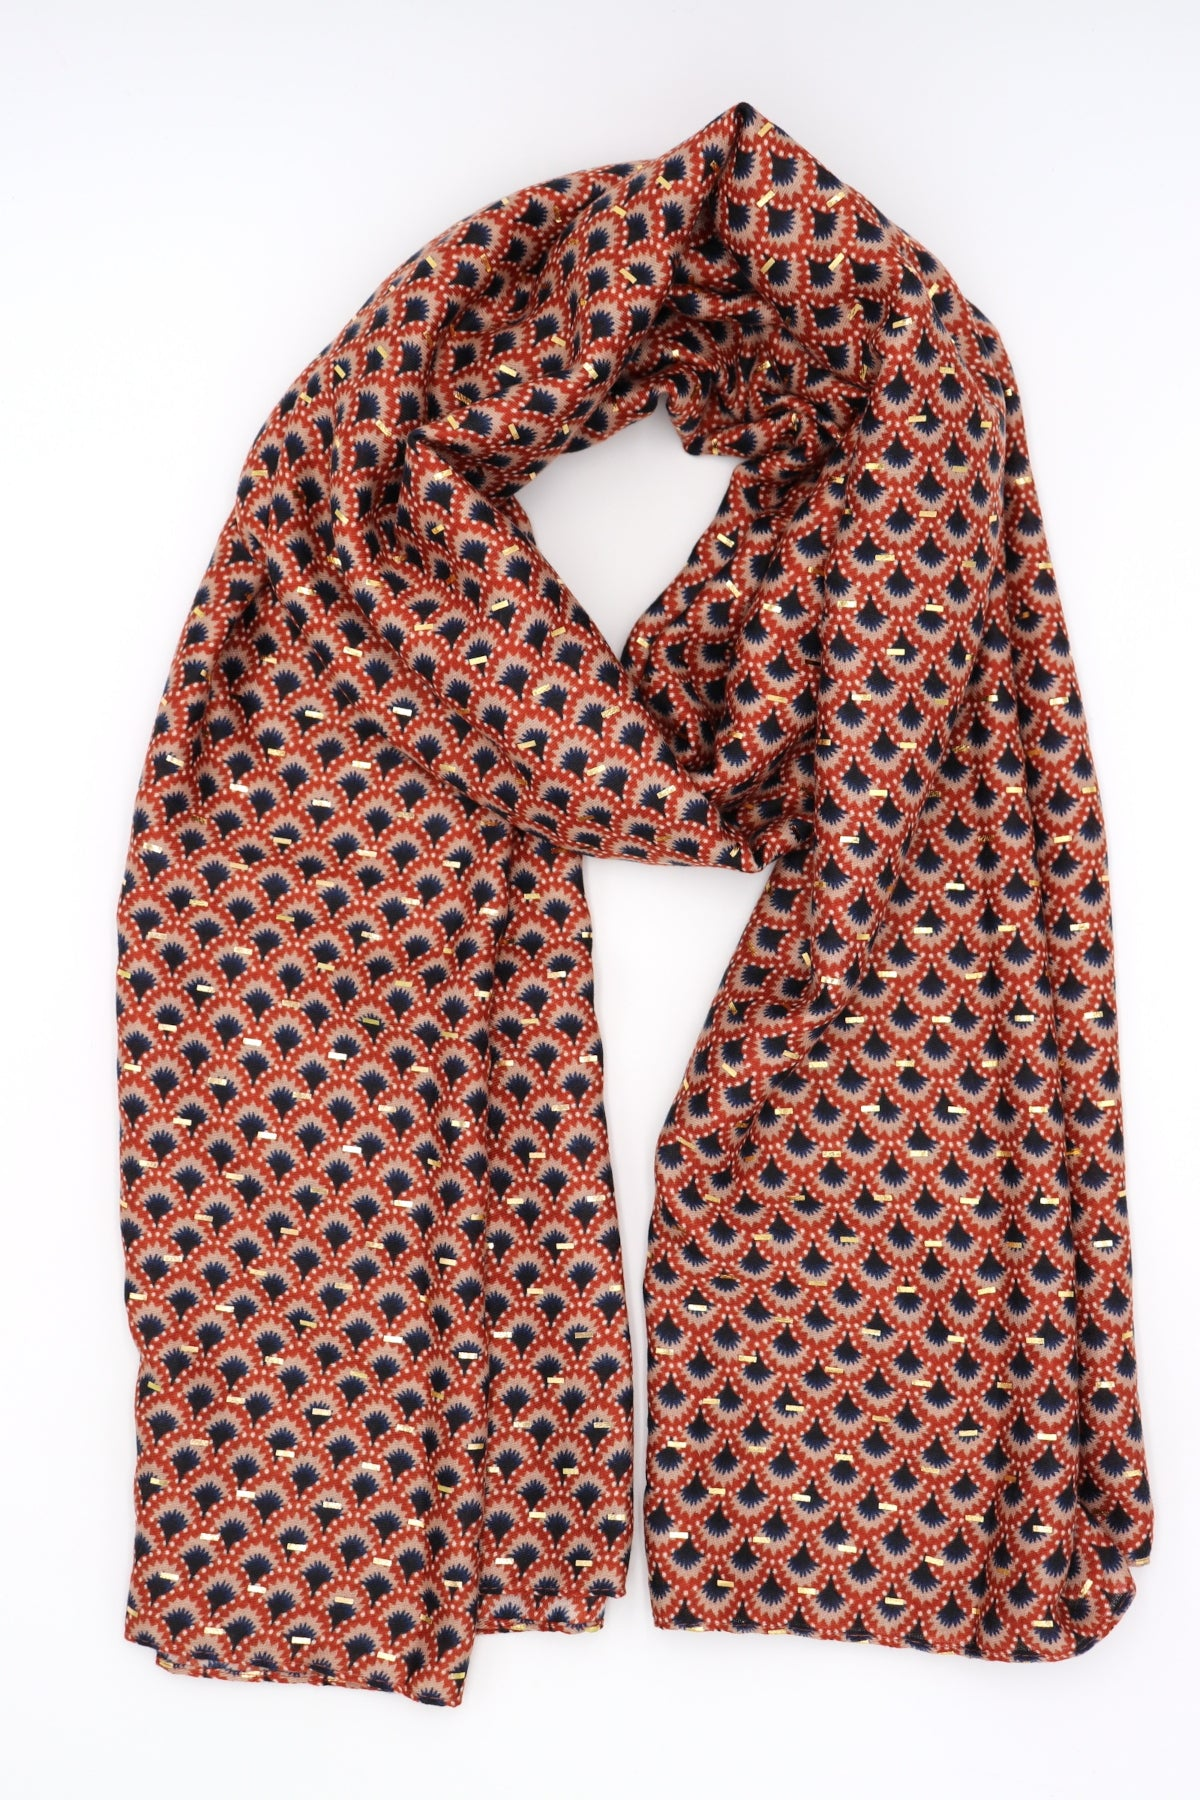 Phoebe Gold Detail Scarf Rust